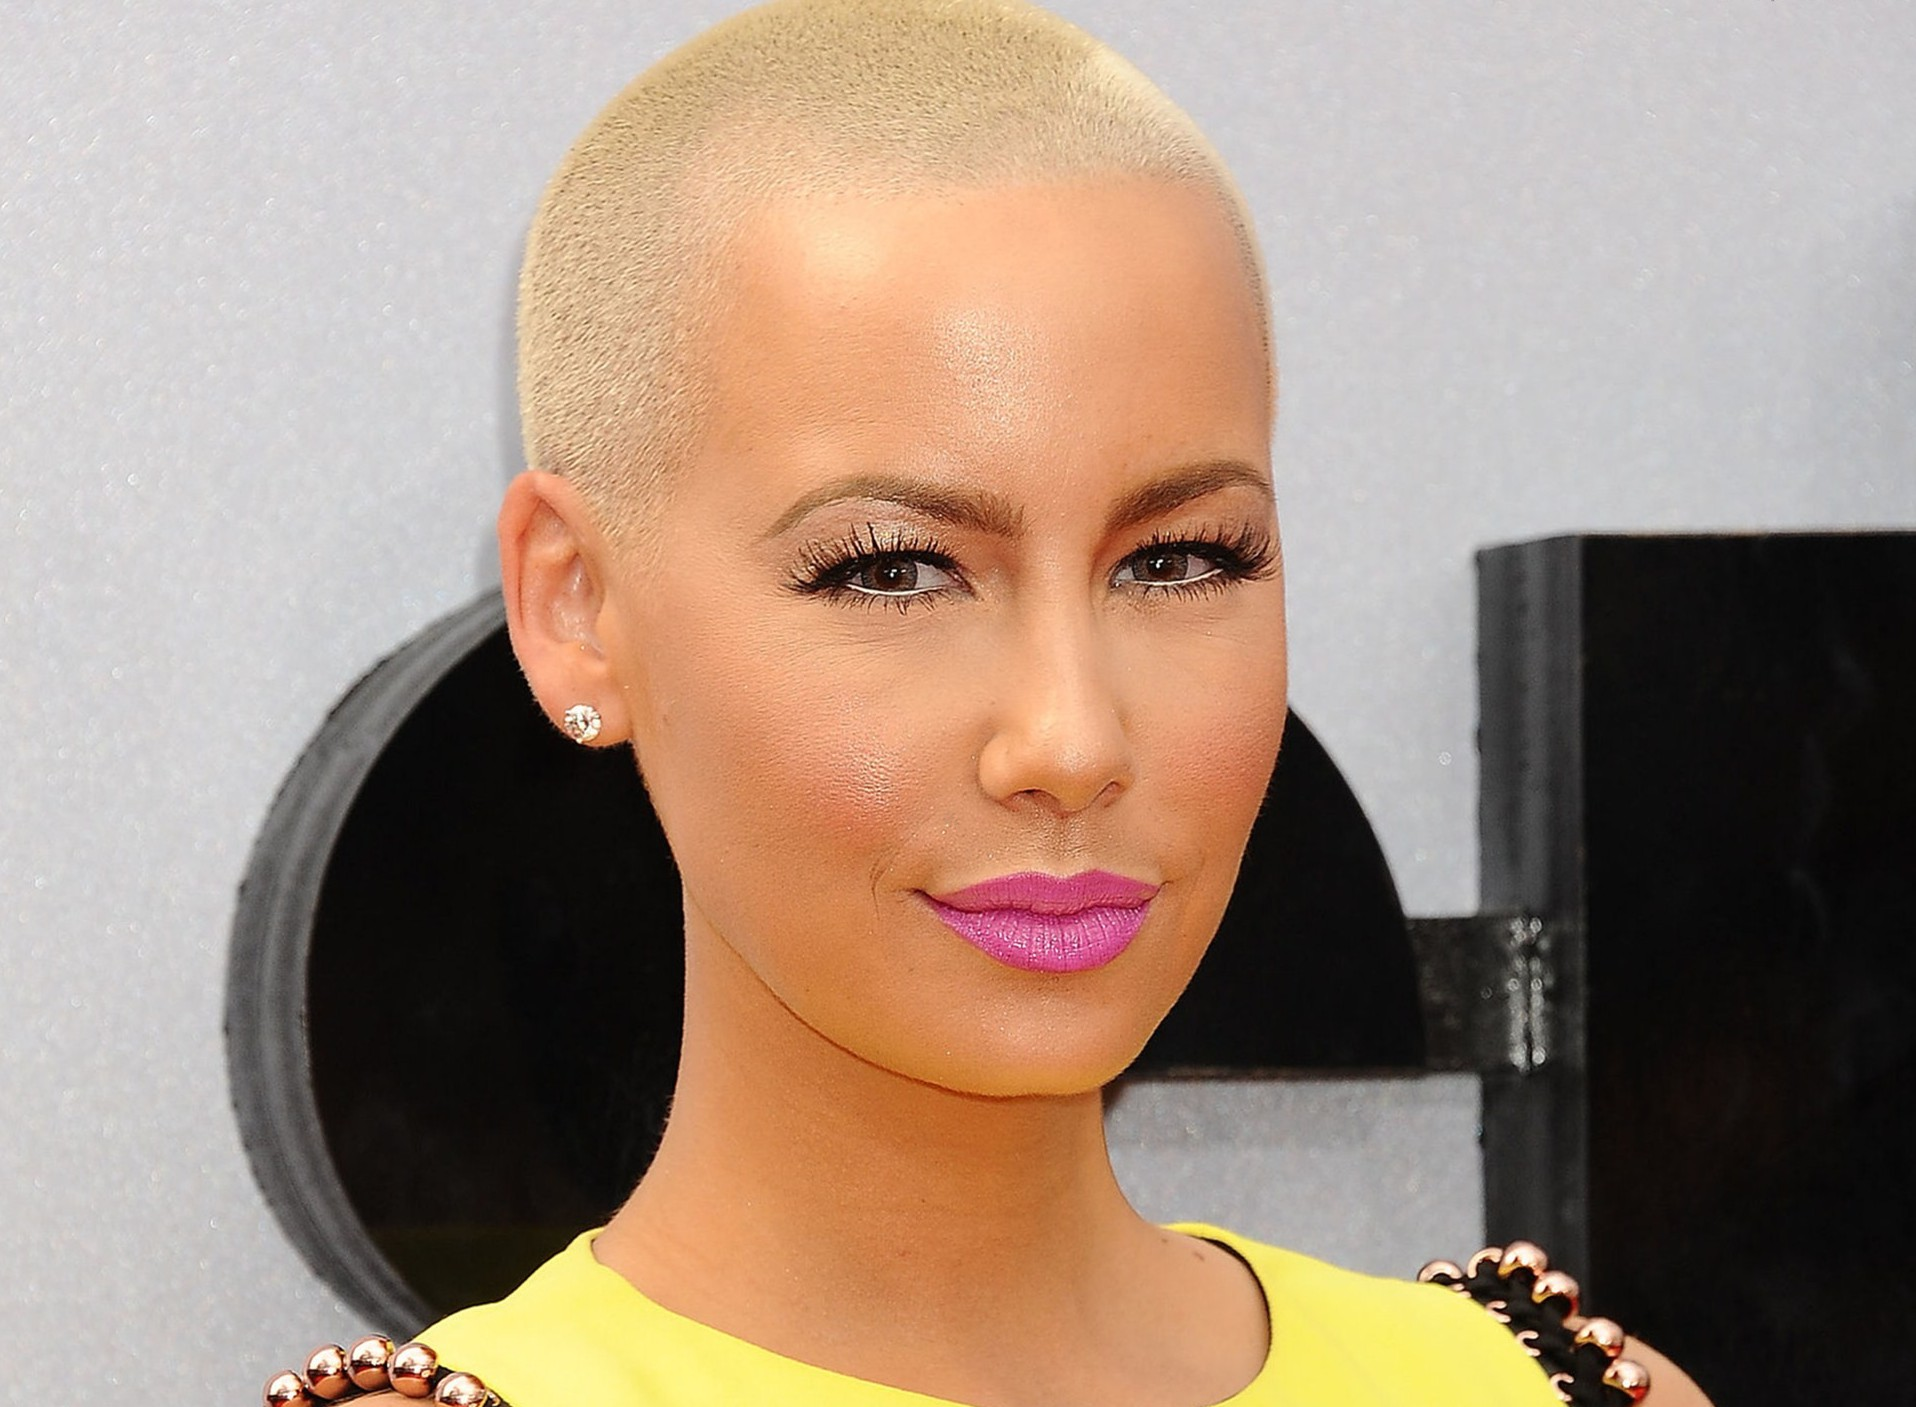 Young Amber Rose nudes (53 foto and video), Topless, Sideboobs, Boobs, legs 2020